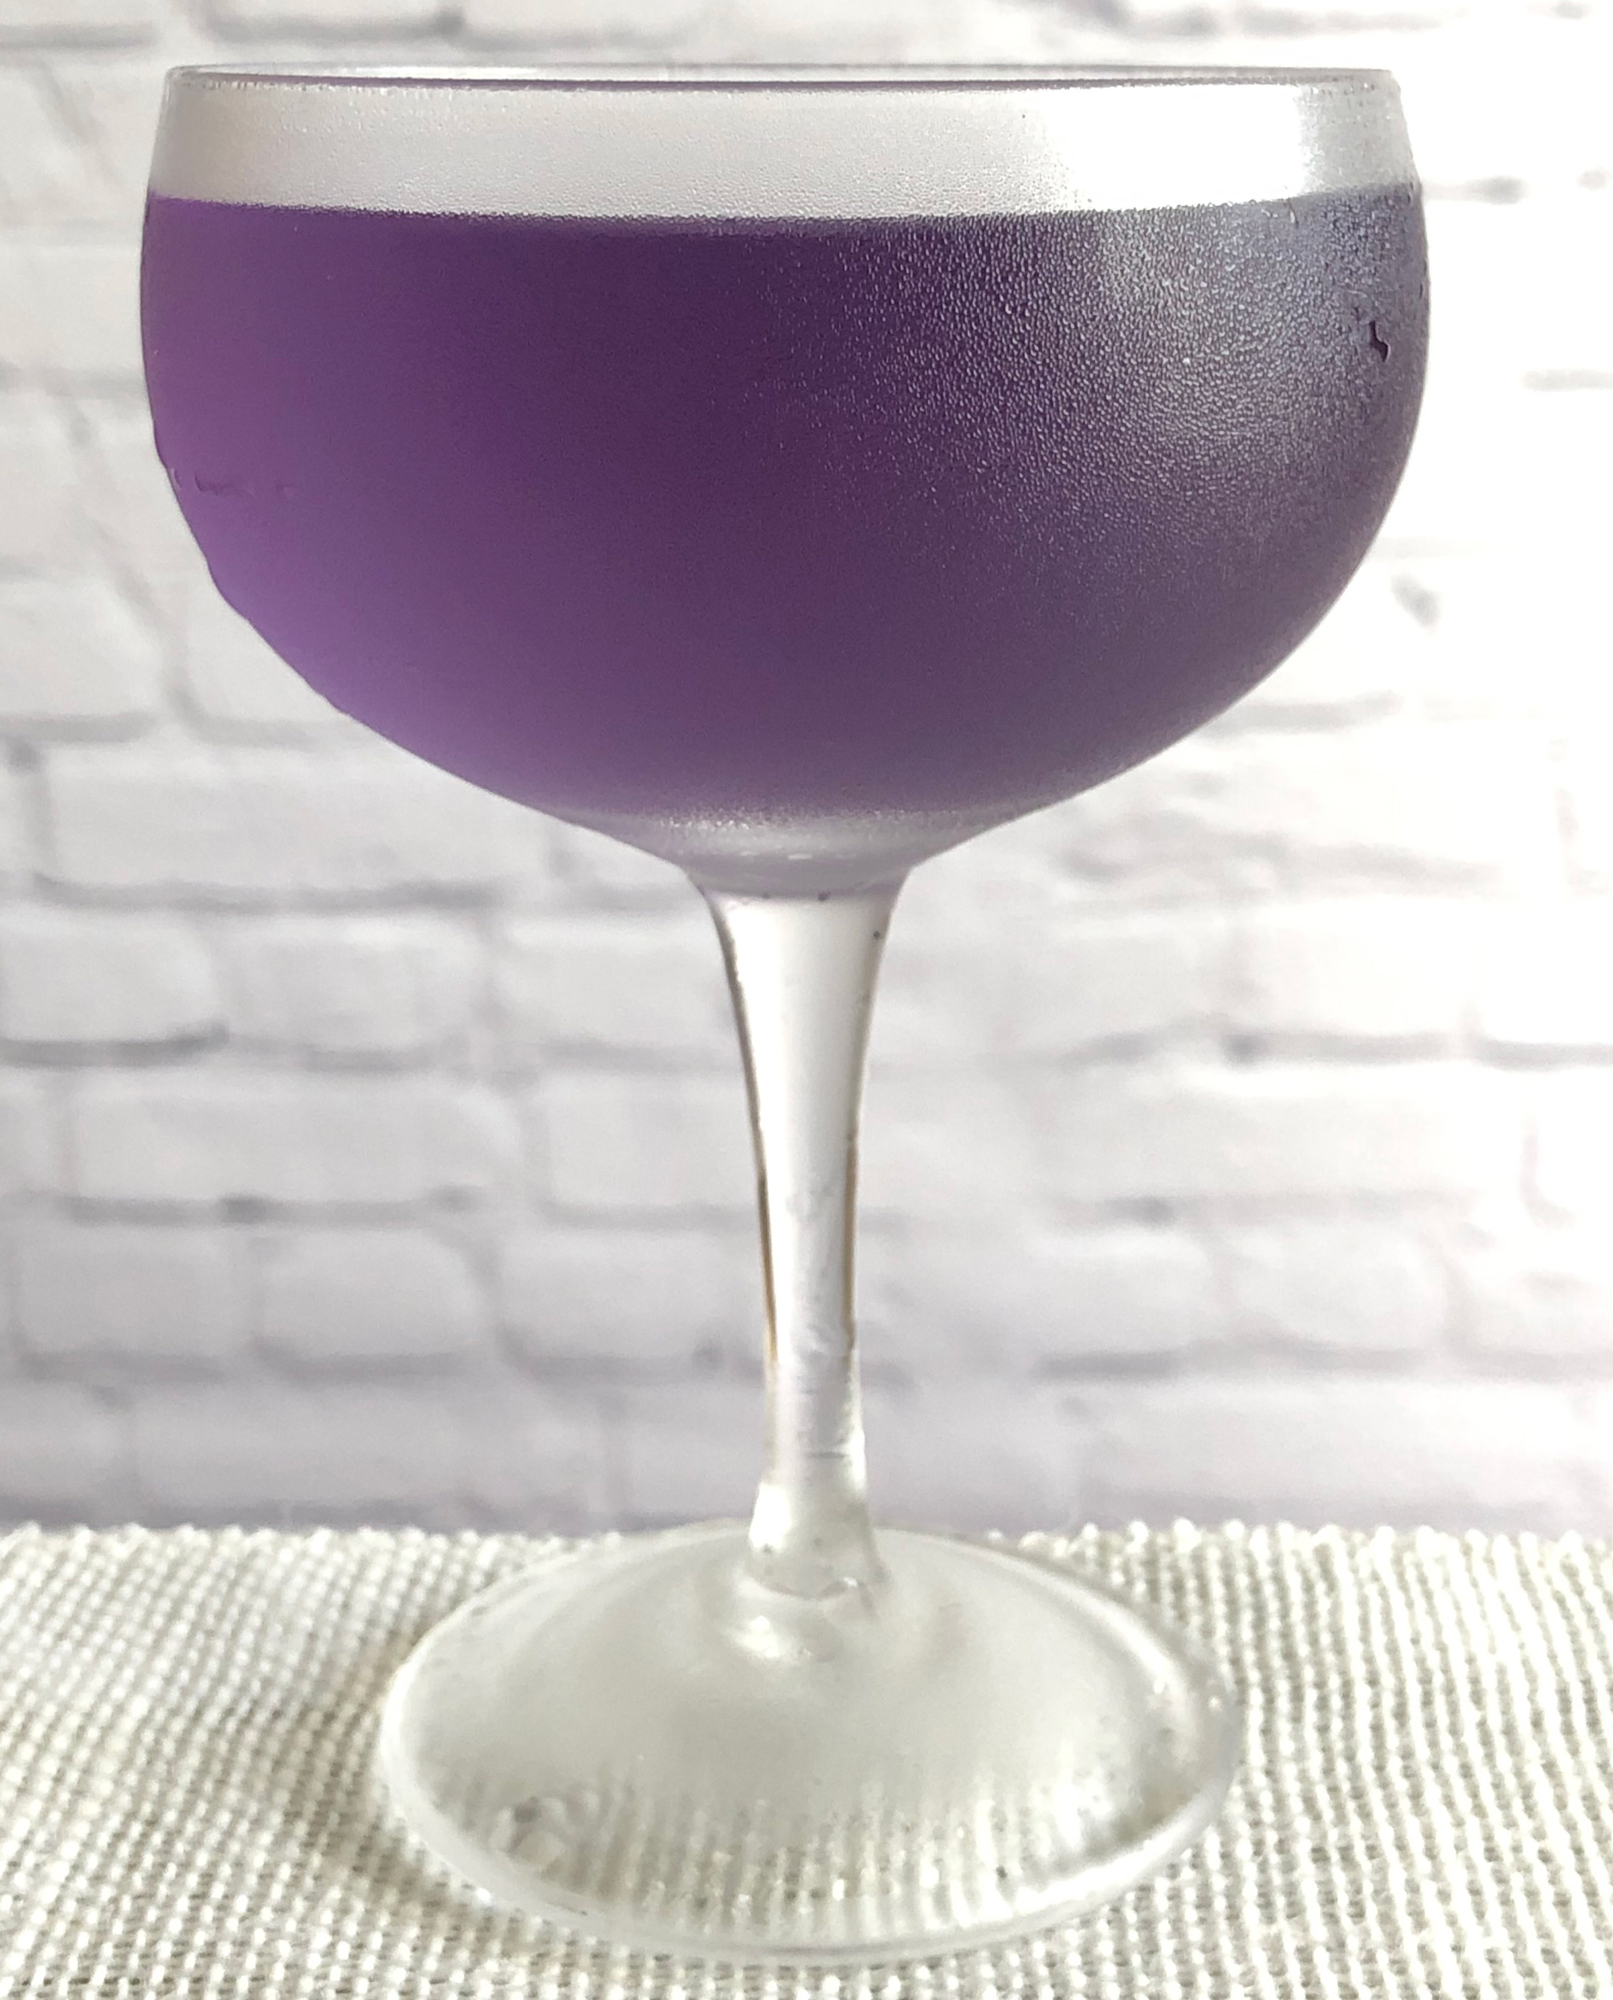 An example of the Yale Cocktail, the mixed drink (cocktail), by Eric Felten, Wall Street Journal, featuring Hayman's London Dry Gin, Rothman & Winter Crème de Violette, Dolin Dry Vermouth de Chambéry, and Angostura bitters; photo by Lee Edwards